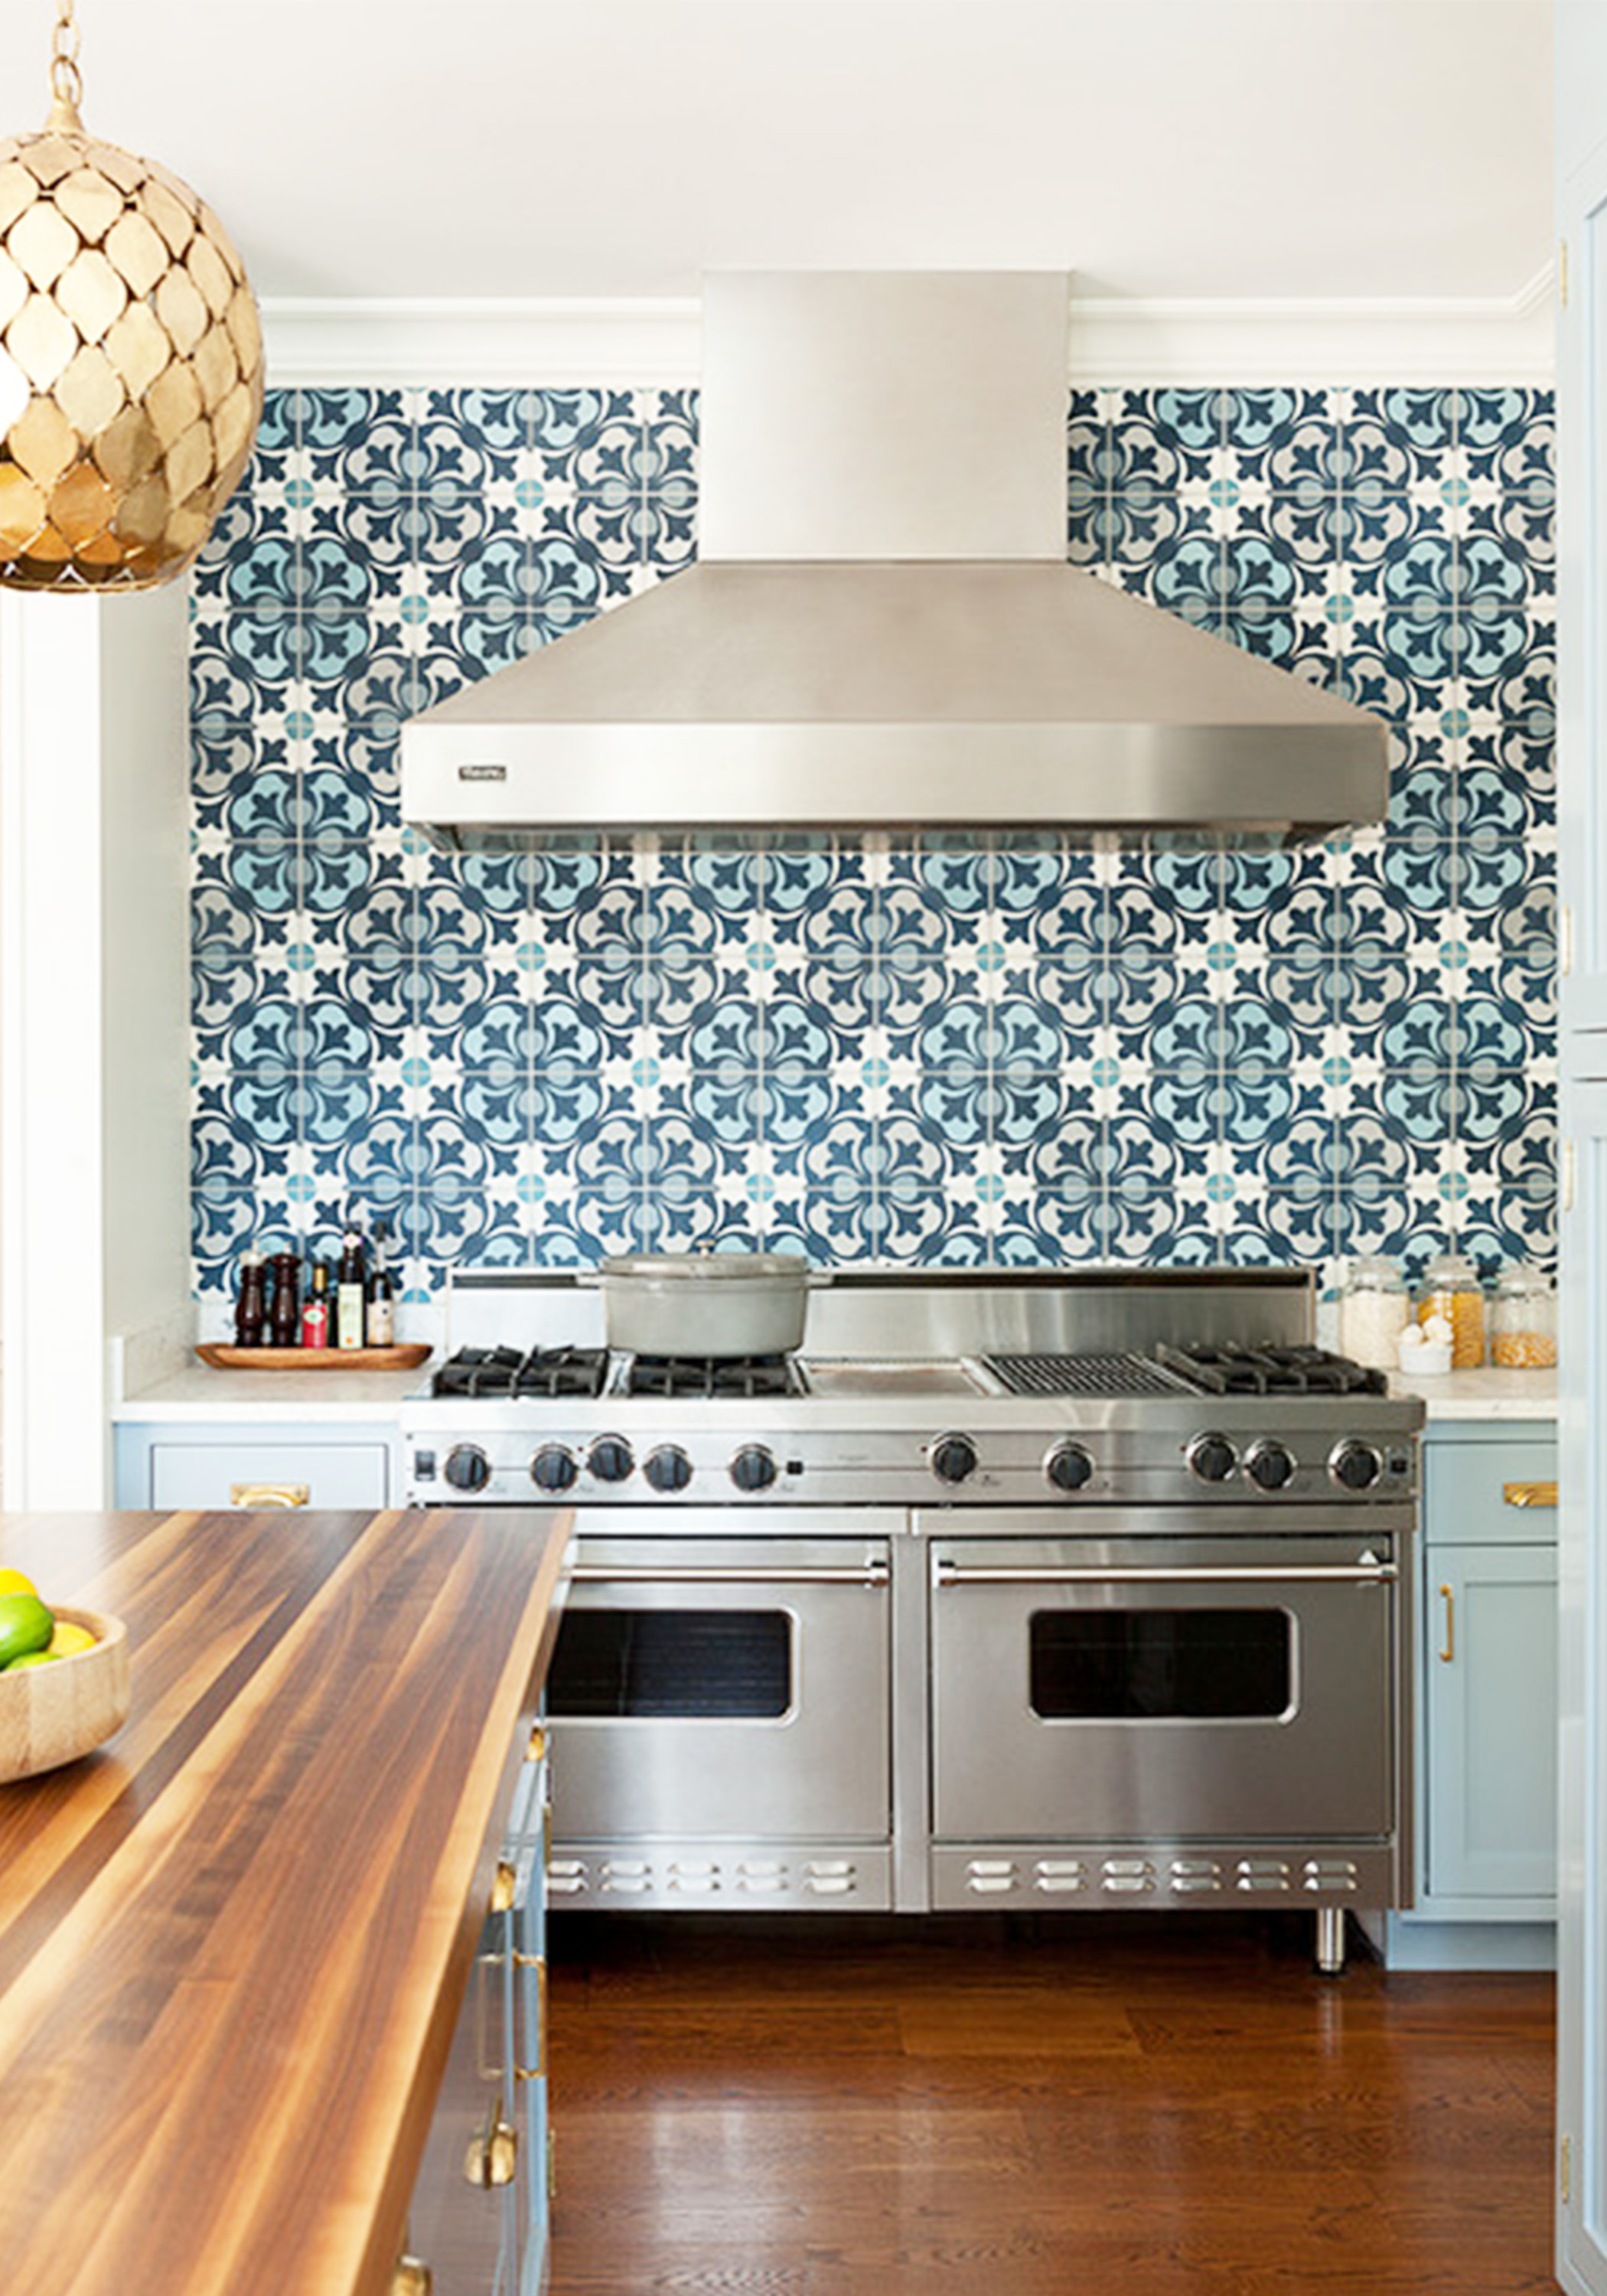 Kitchen Tile Designs Behind Stove Home Design